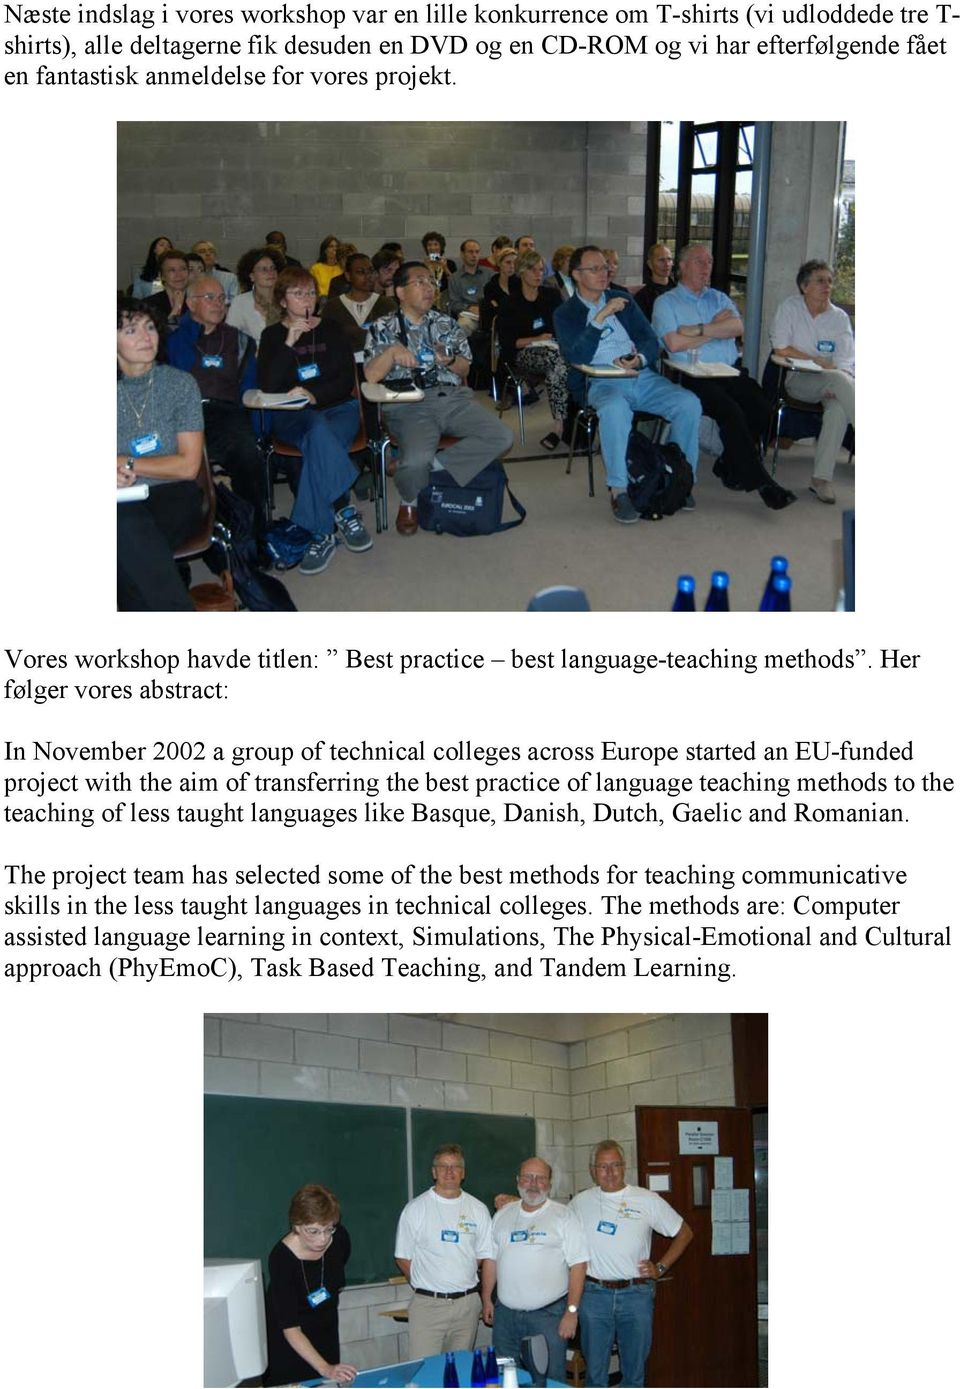 Her følger vores abstract: In November 2002 a group of technical colleges across Europe started an EU-funded project with the aim of transferring the best practice of language teaching methods to the